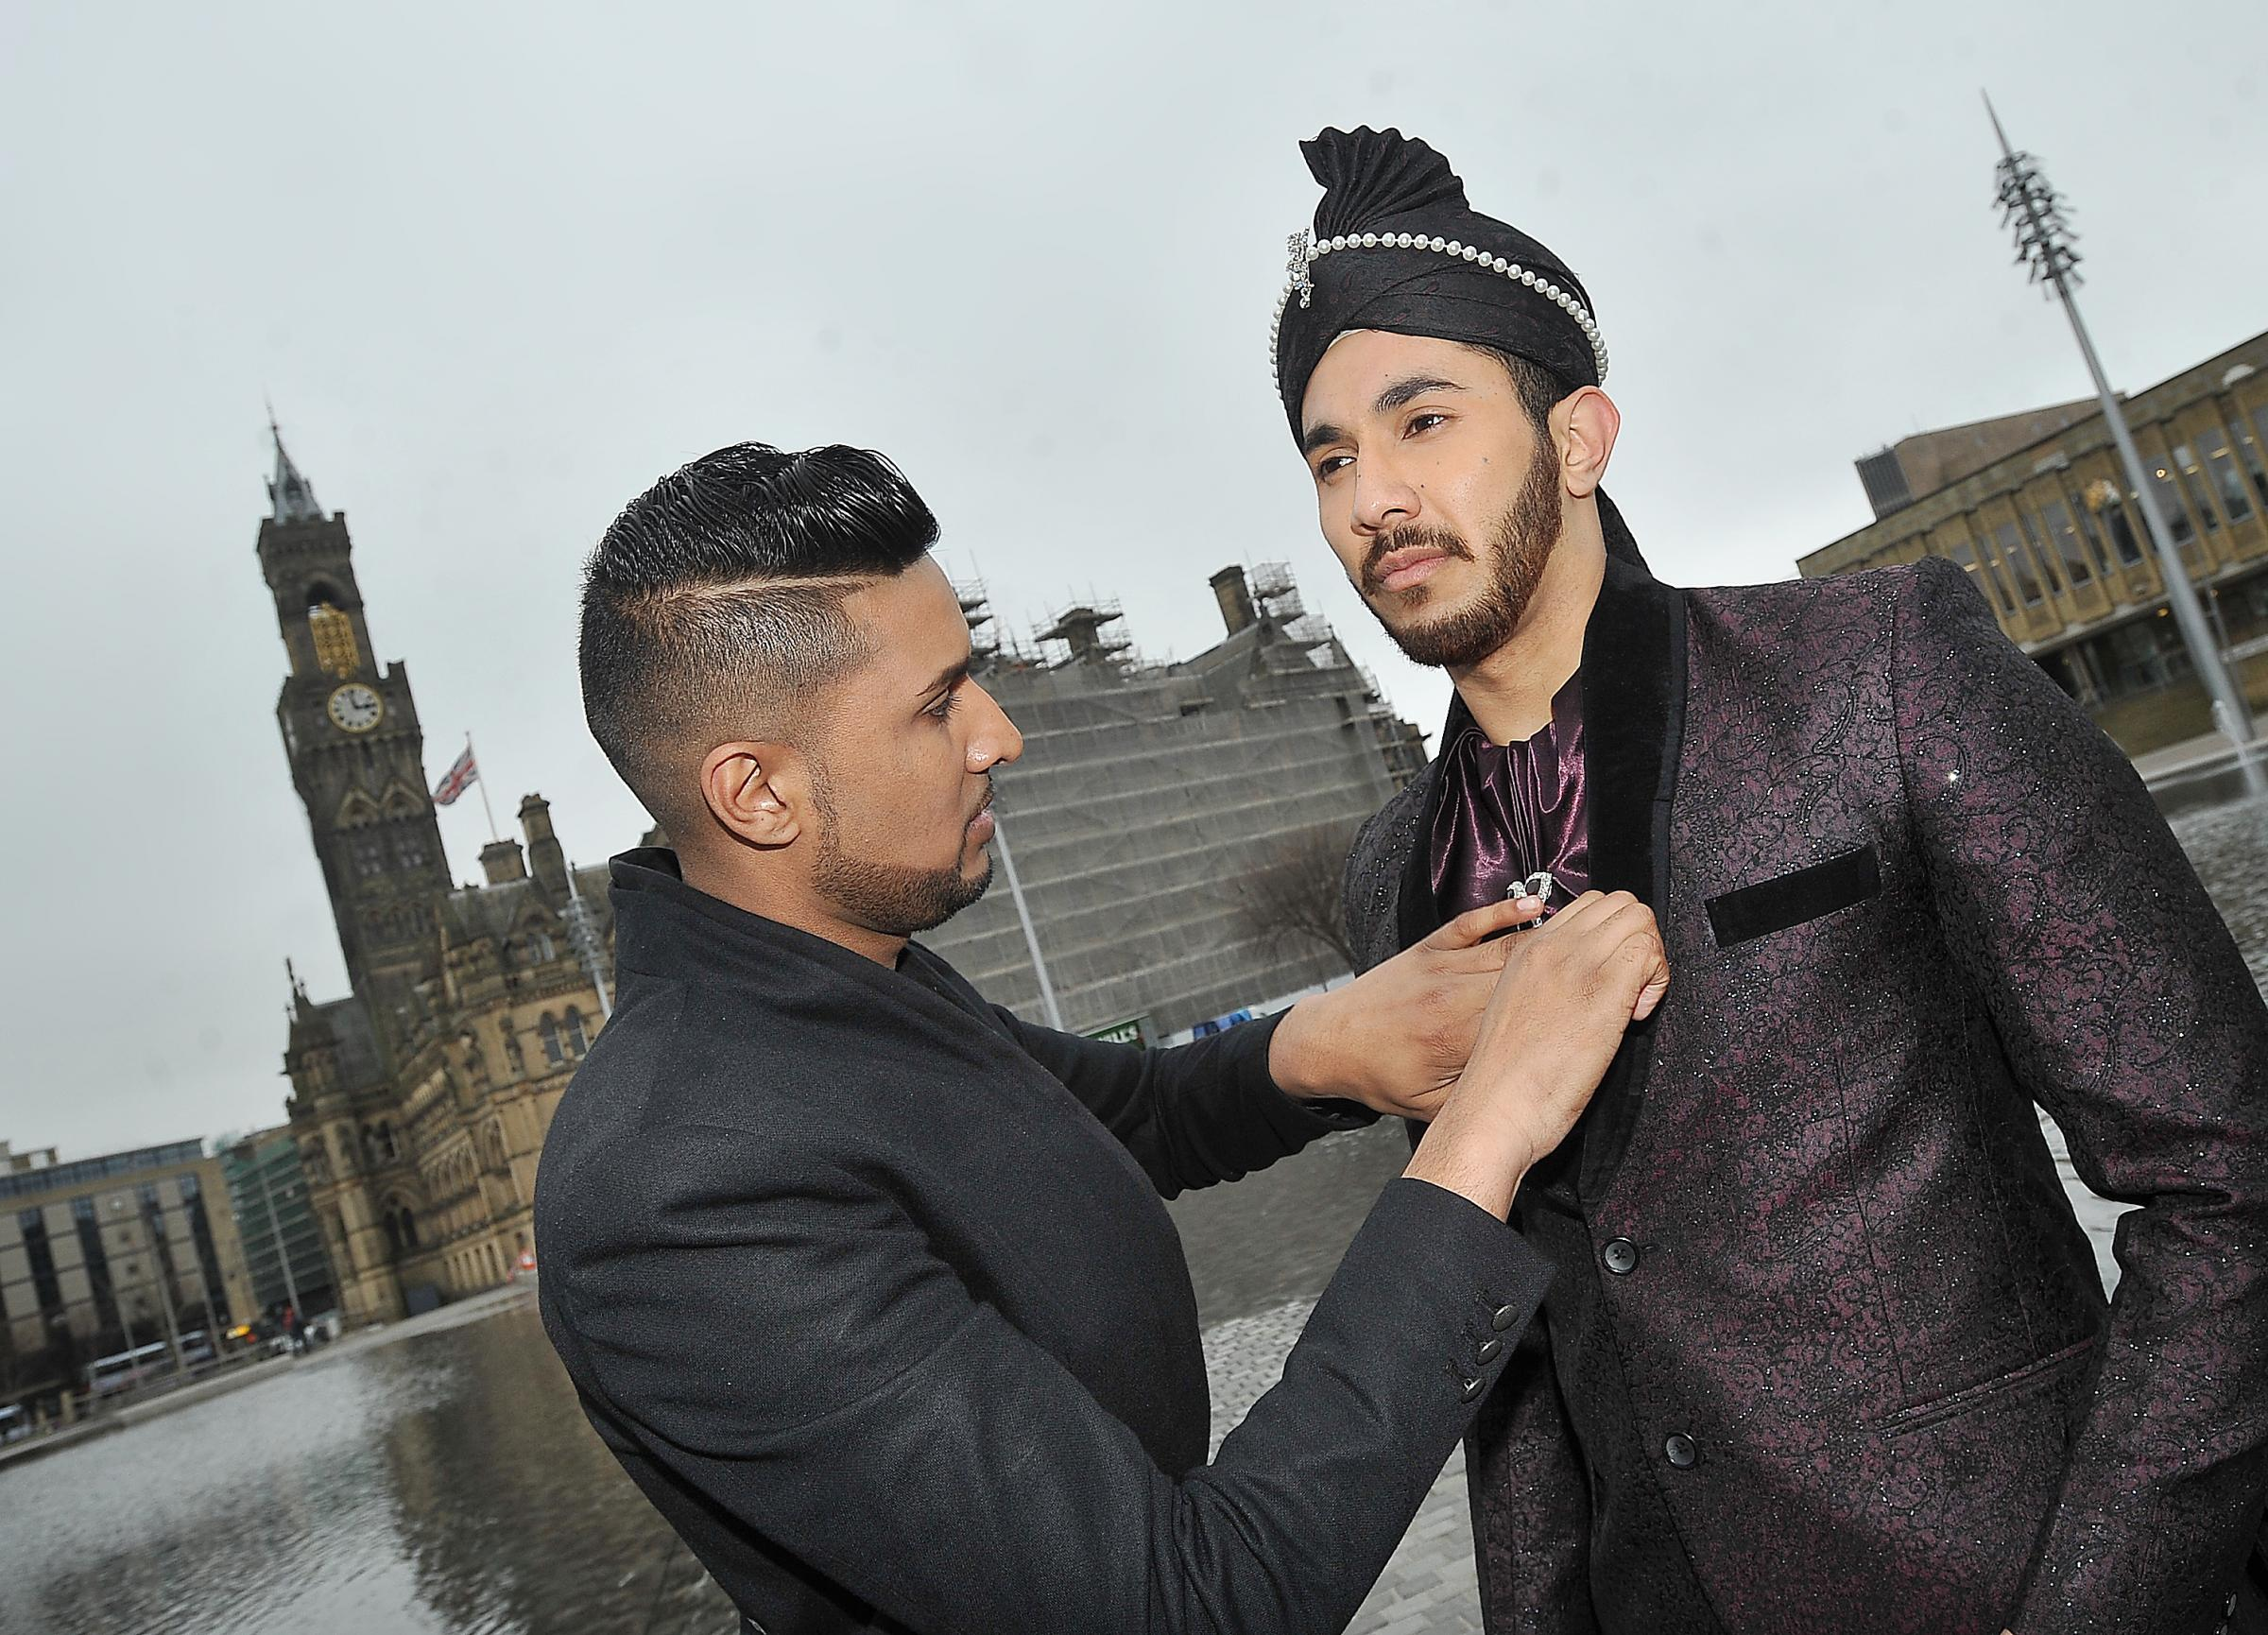 Designer Imran Khan, who has designed blazers popular with Bollywood stars and British celebrities, dressing model Waqas Sher